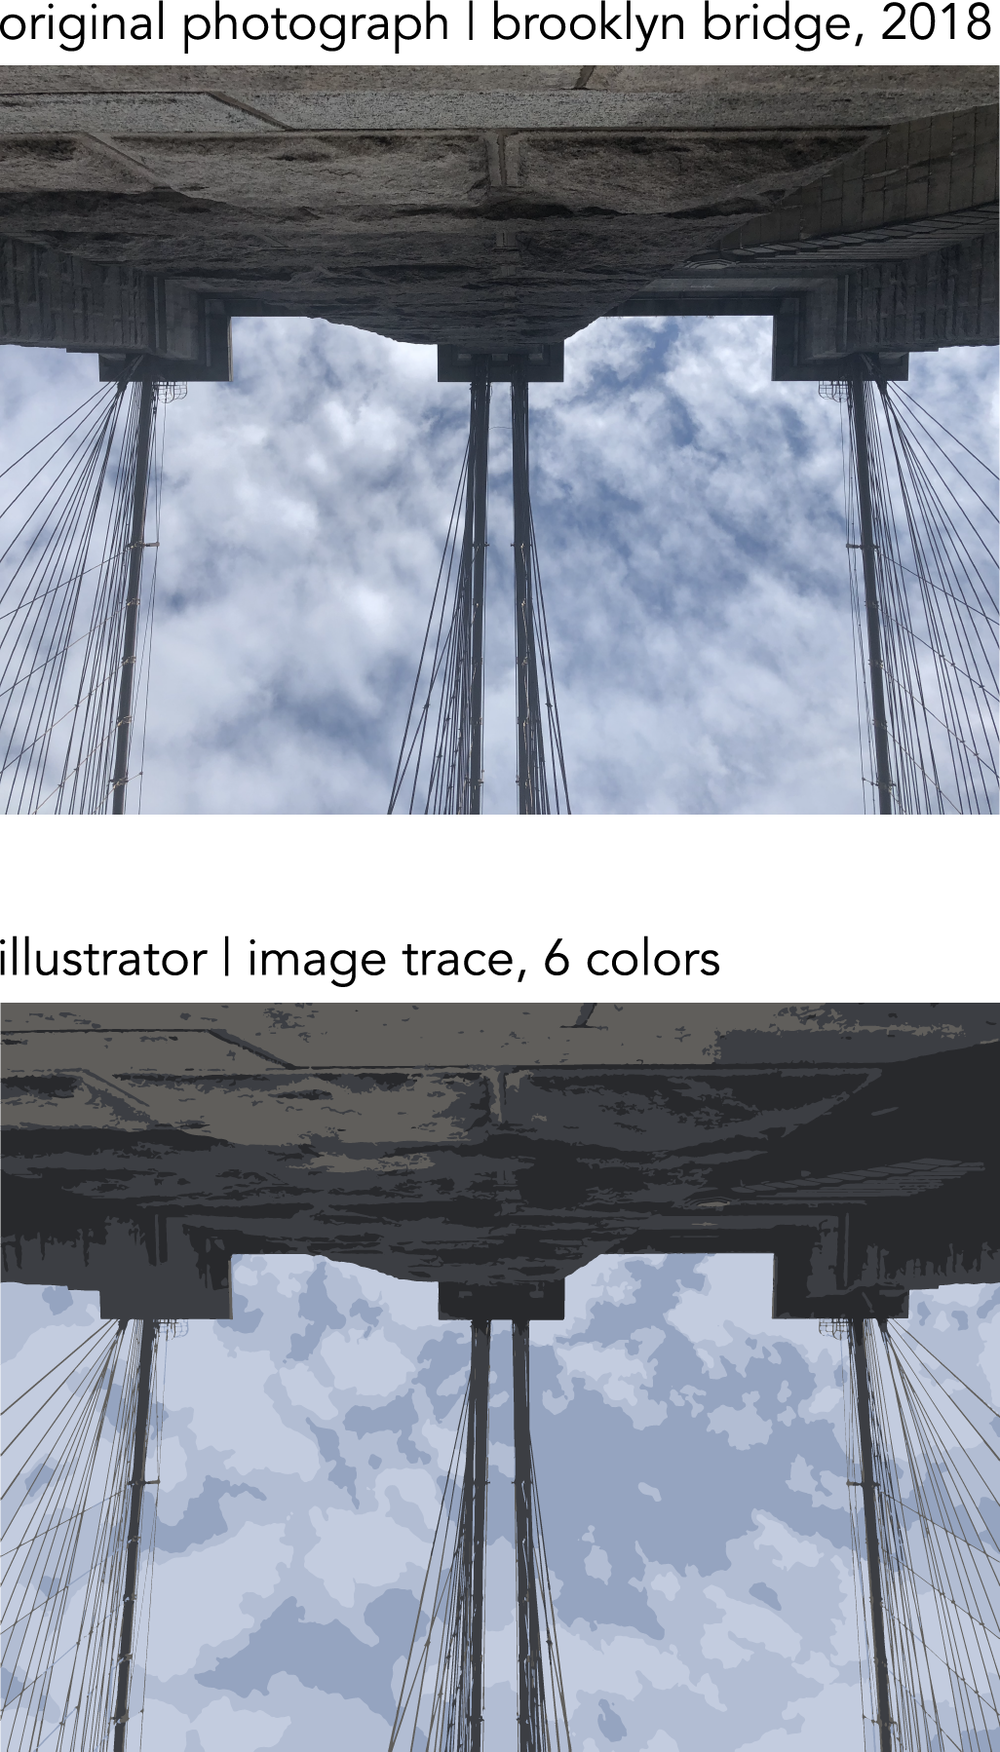 image to image trace with six colors.